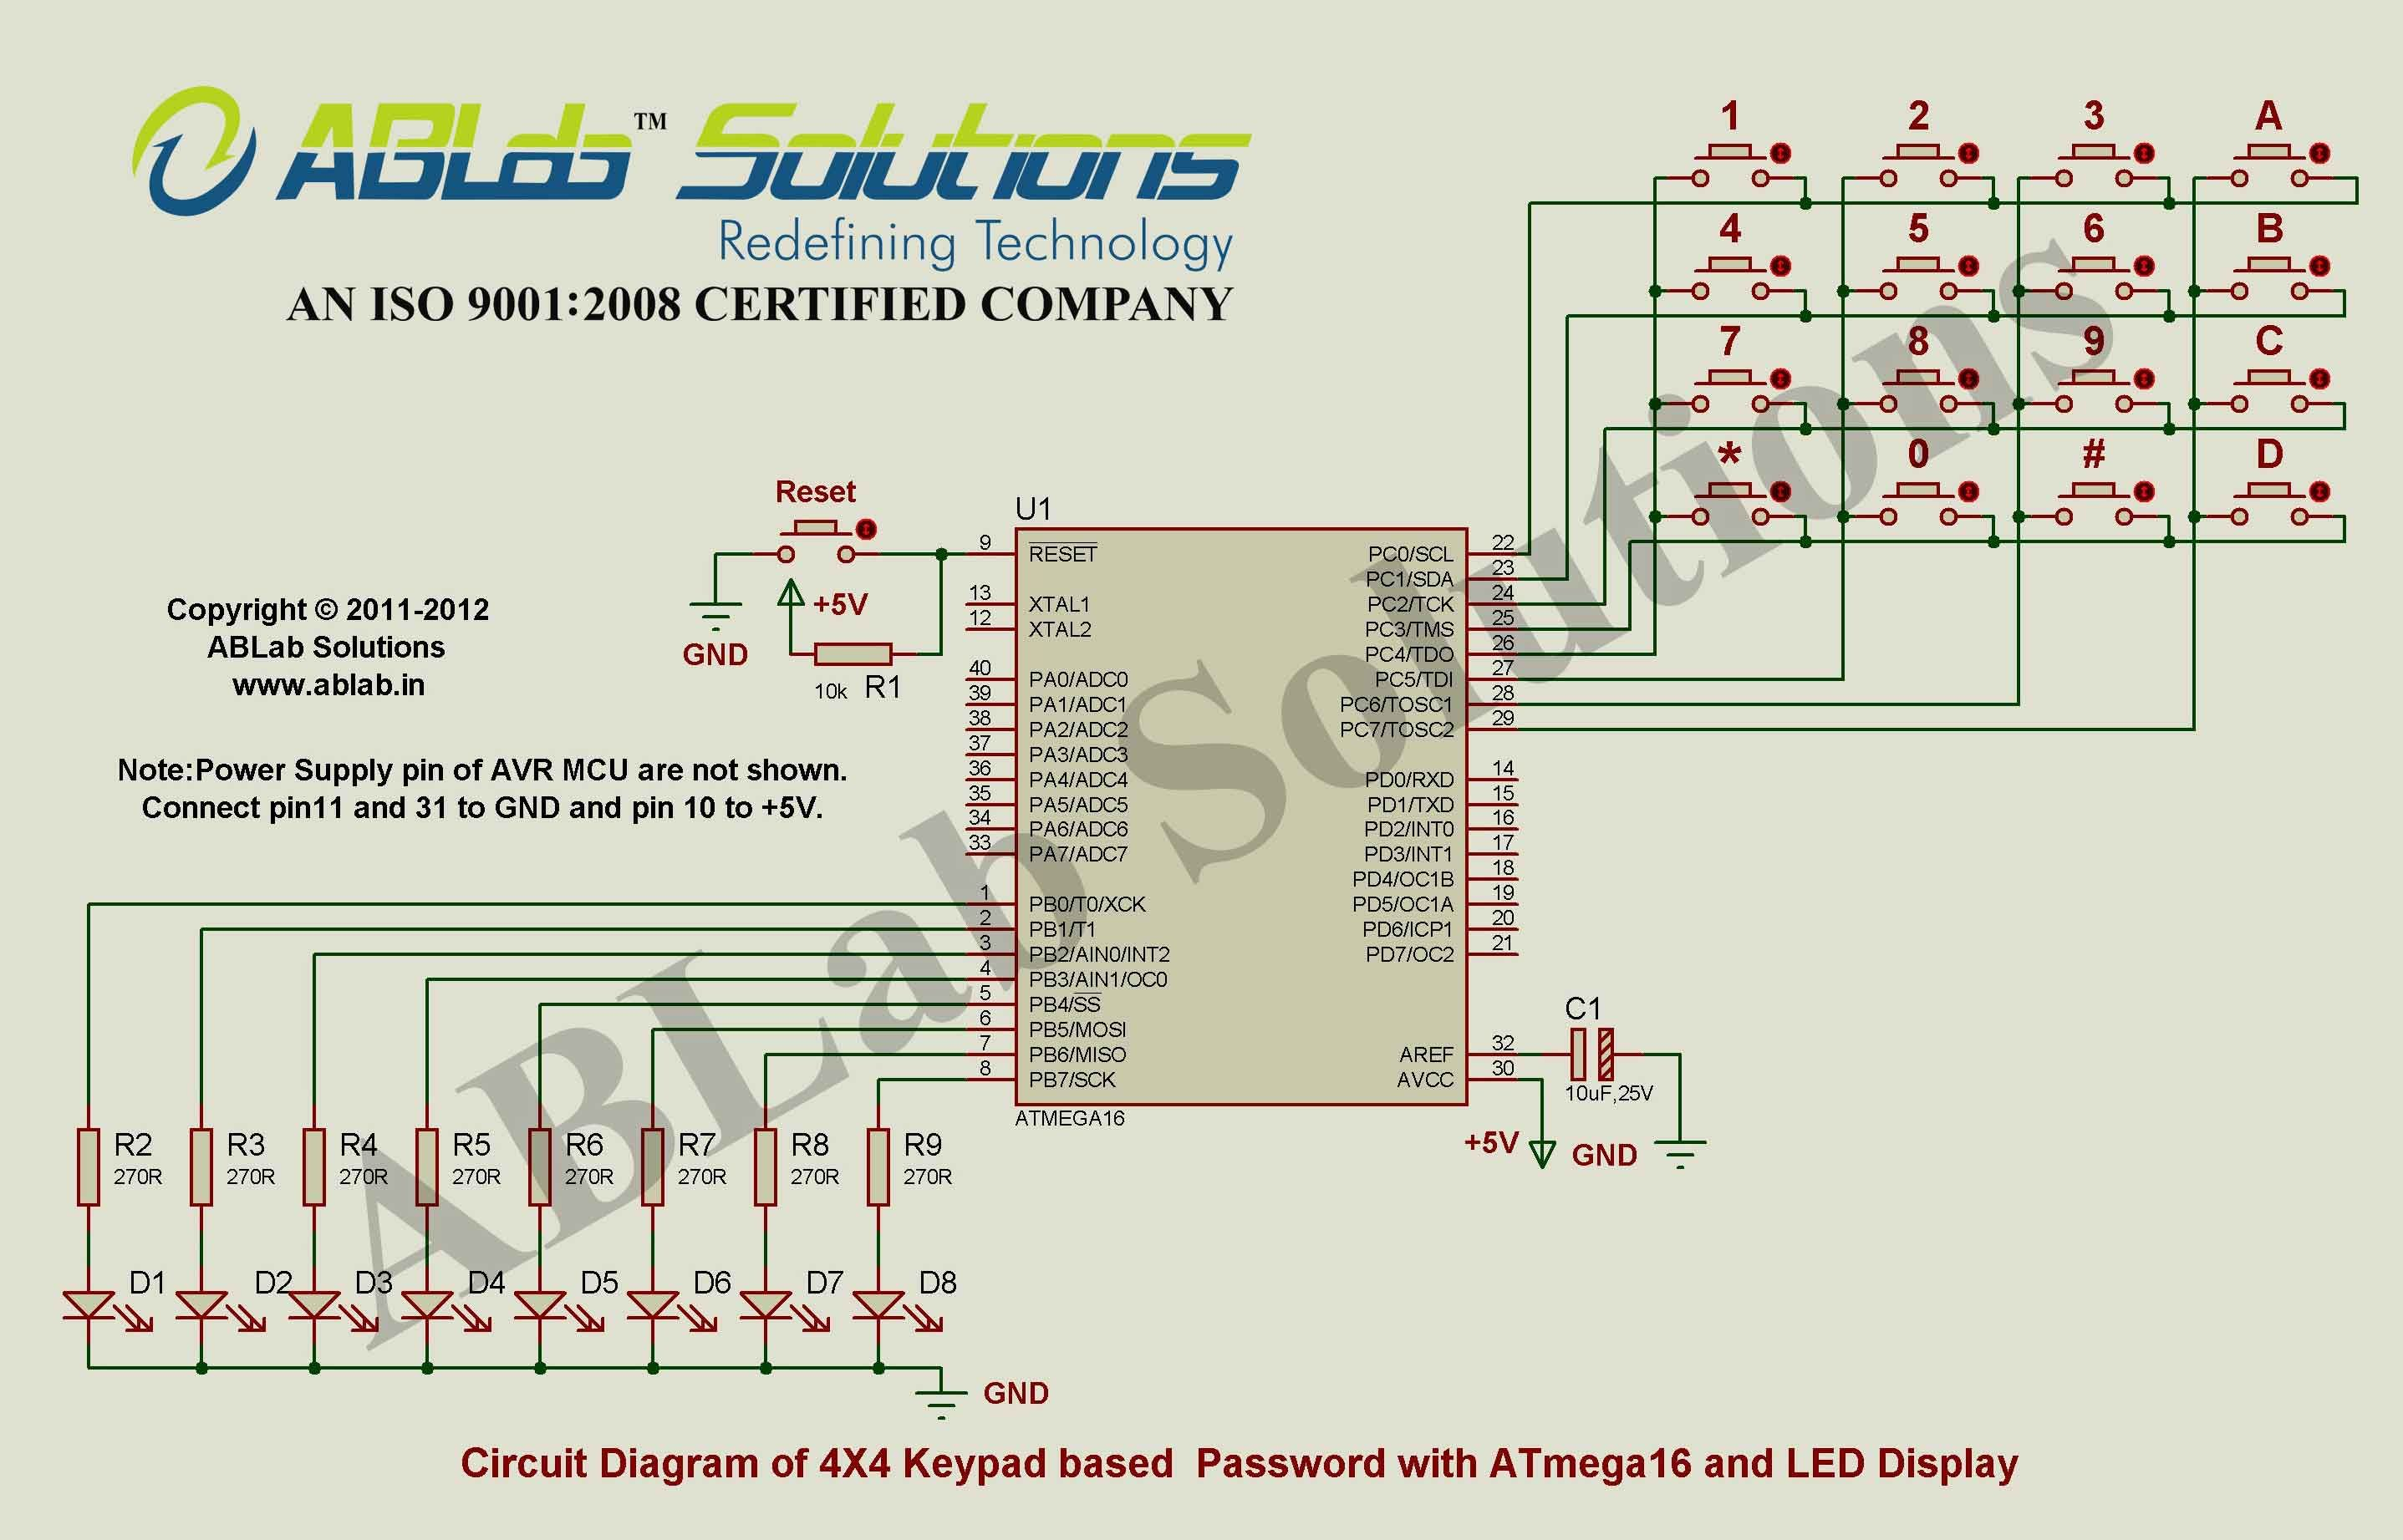 medium resolution of x4 keypad based password with avr atmega16 microcontroller and led display circuit diagram ablab solutions